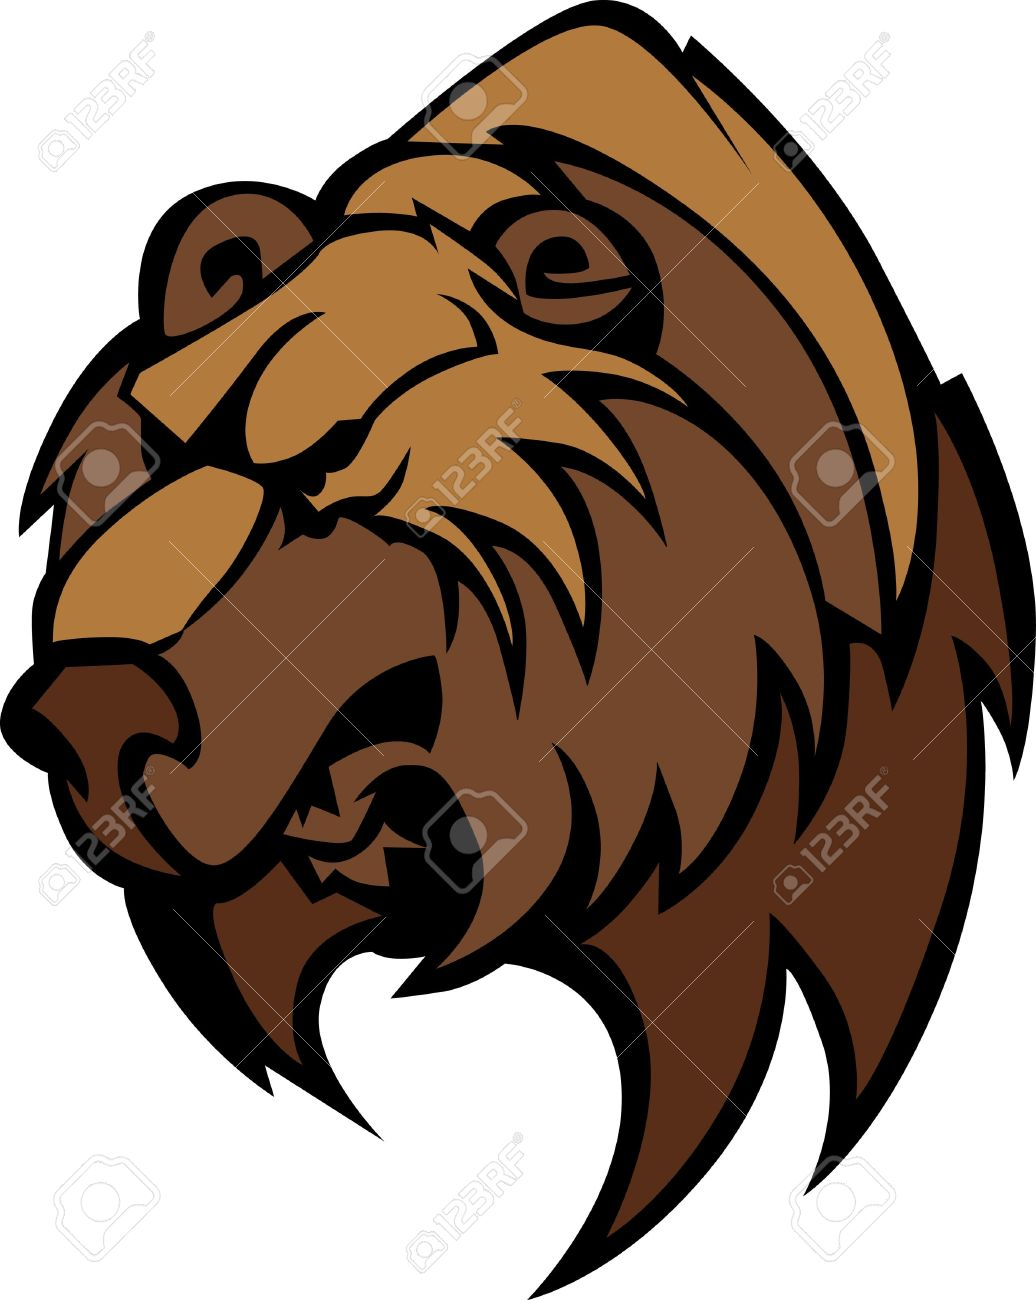 1036x1300 Grizzly Bear Clipart Amp Grizzly Bear Clip Art Images